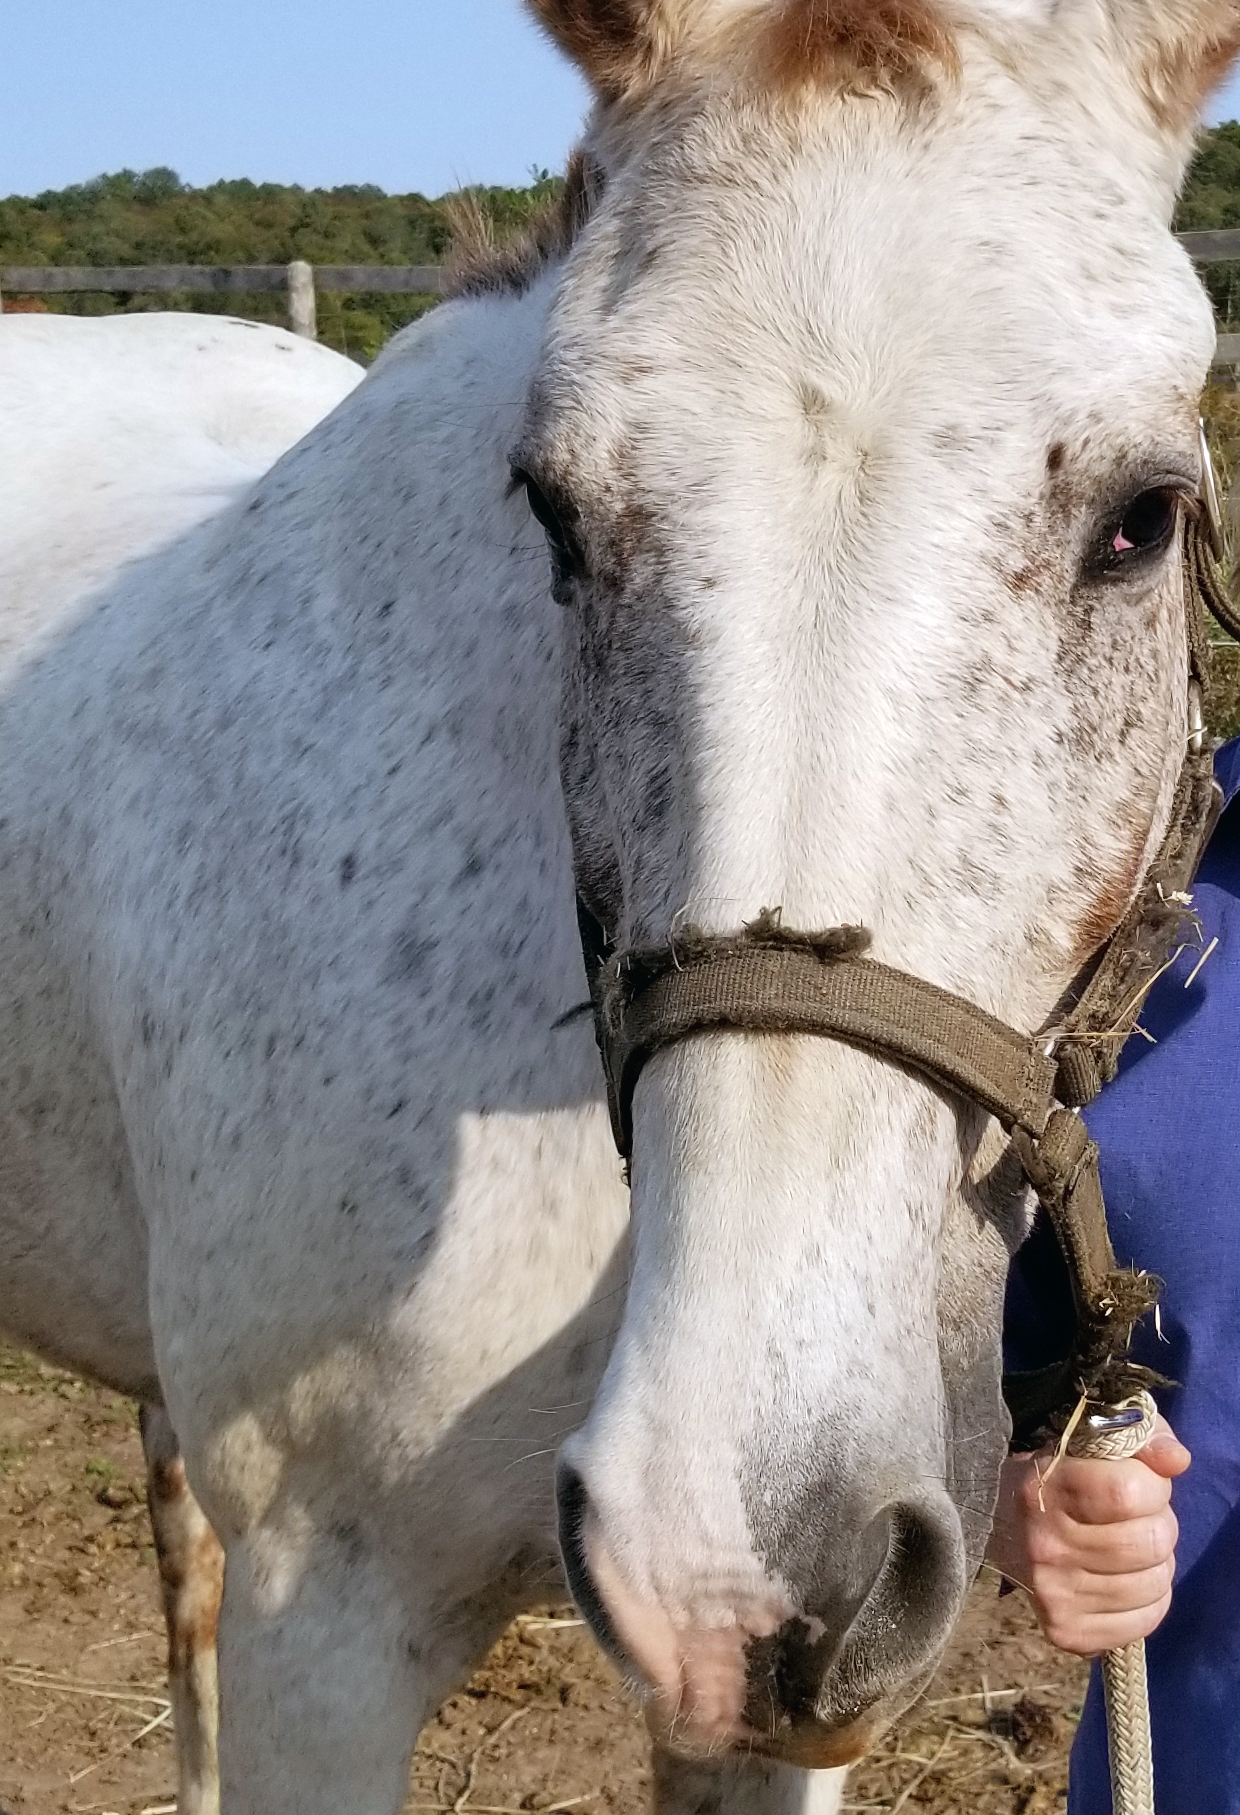 PRESTO - Presto is a kind Appaloosa who is also a teacher and life coach with Partnering Horses with Humans. Presto helps clients take their power by using their intention to achieve life's goals. Presto is extremely sensitive and offers clients a safe haven to work through depression and release what is holding them back.